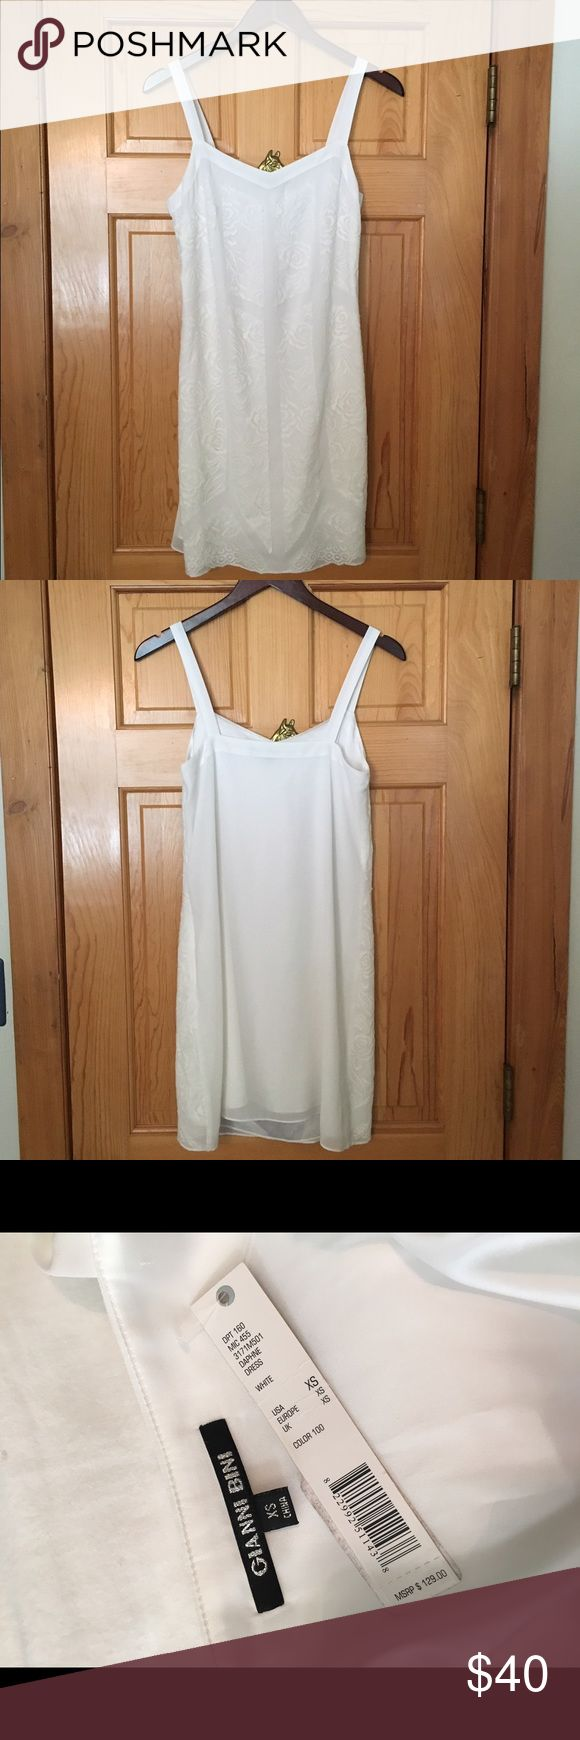 Gianni Bini Daphne Dress Gianni Bini White Daphne Dress in a size XS. Brand new, never worn, with tags! Gianni Bini Dresses Mini